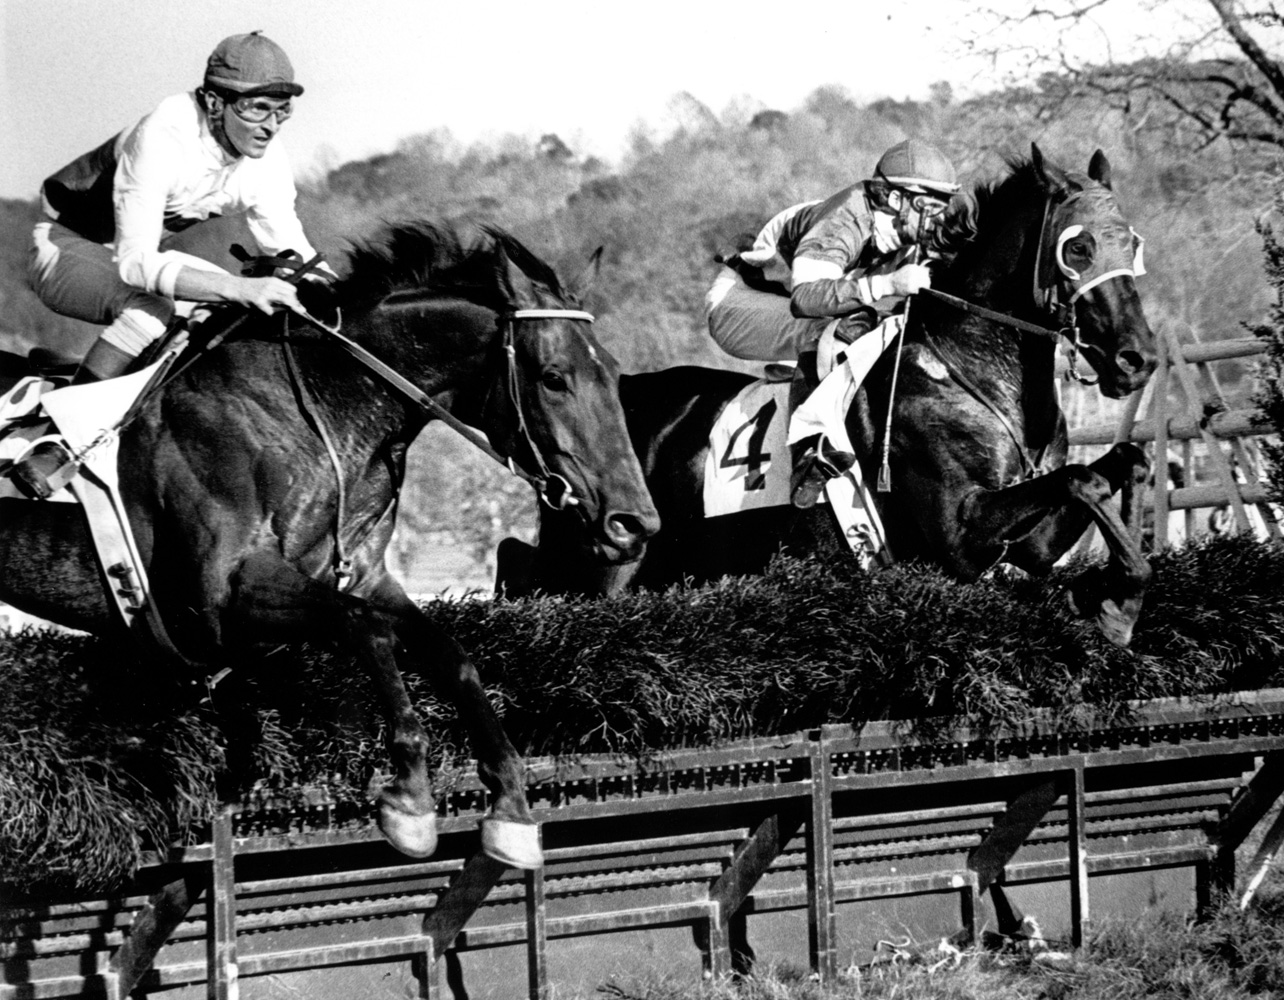 Jerry Fishback and Café Prince (left) taking a jump in the 1977 Samuel Martin Memorial Essex Hunt at Far Hills (Douglas Lees/Museum Collection)